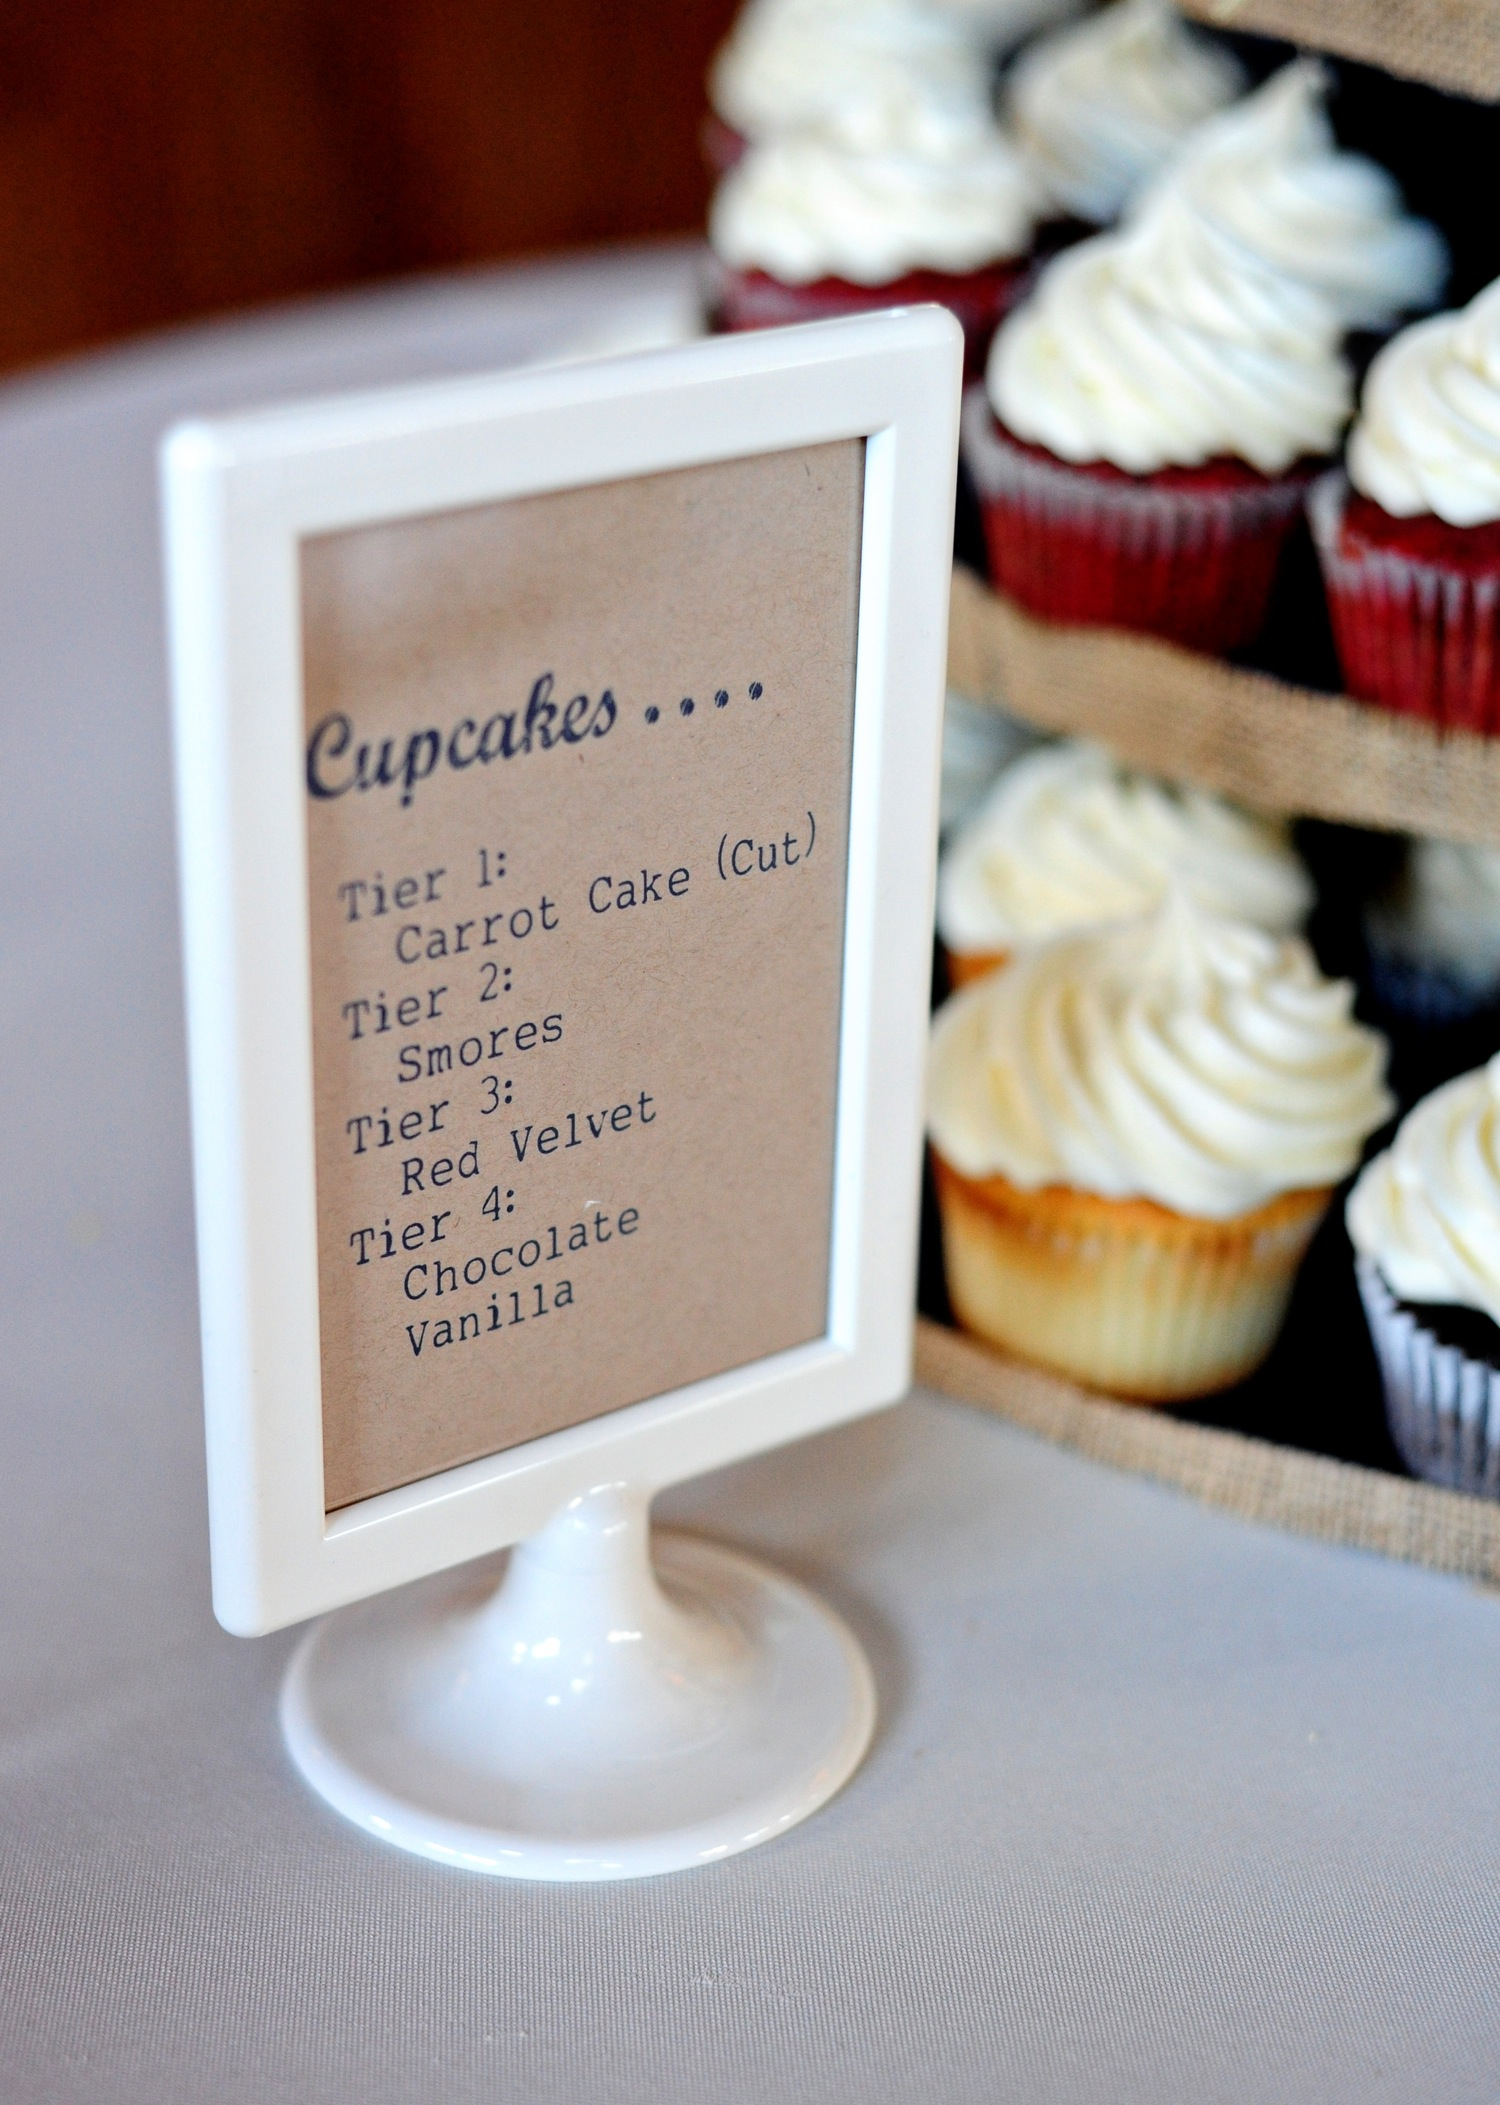 Rustic chic South Carolina wedding reception with cupcakes